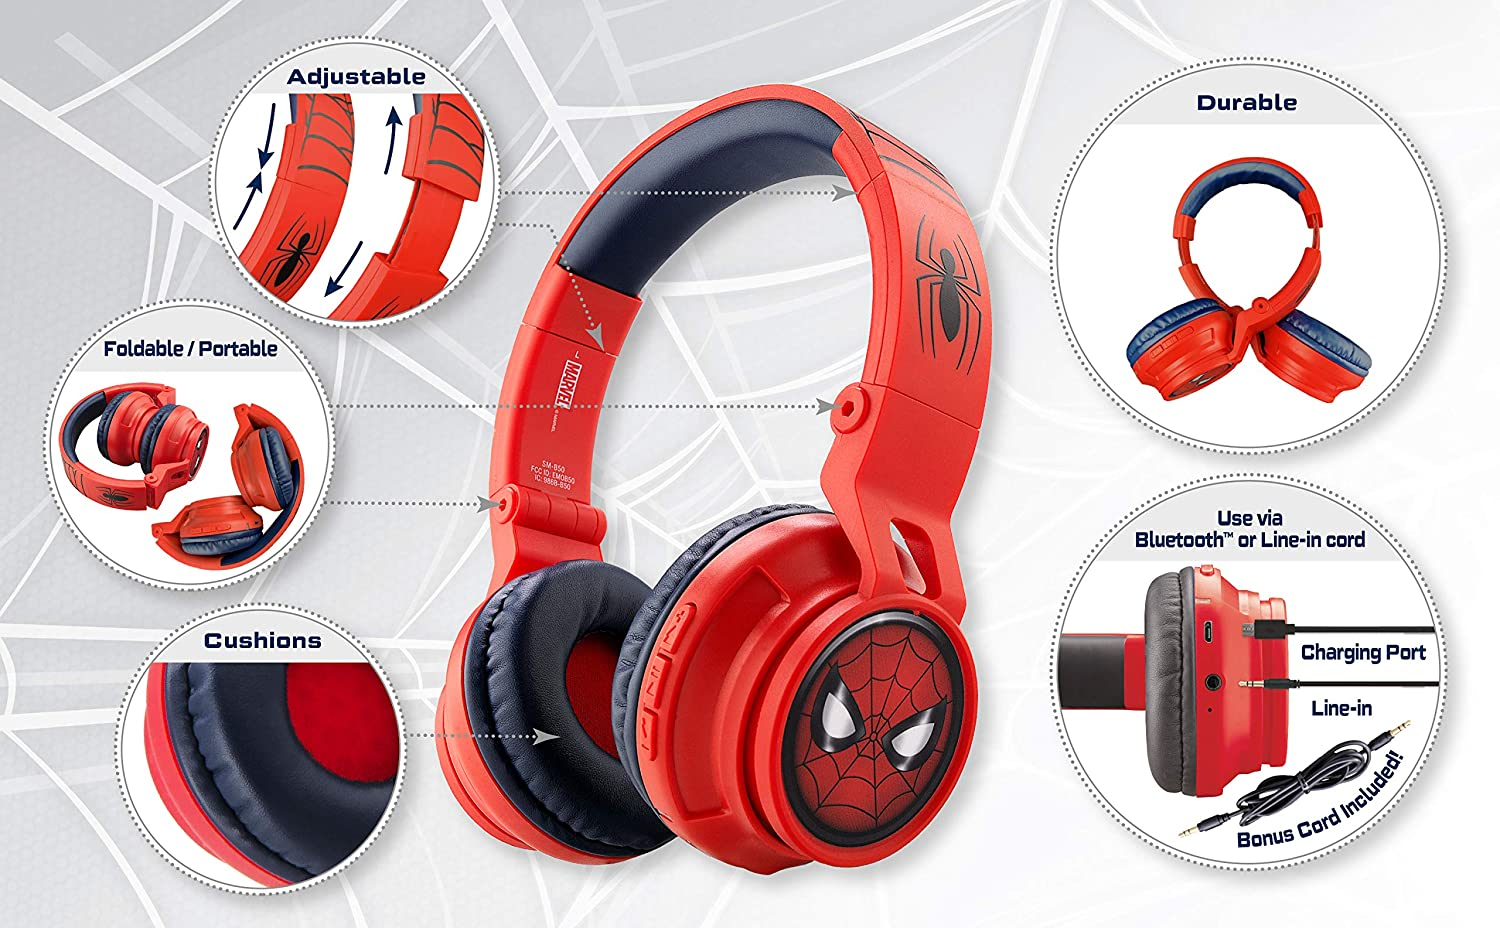 Amazon Com Ekids Spiderman Wireless Bluetooth Portable Kids Headphones With Microphone Volume Reduced To Protect Hearing Rechargeable Battery Adjustable Kids Headband For School Home Or Travel Toys Games